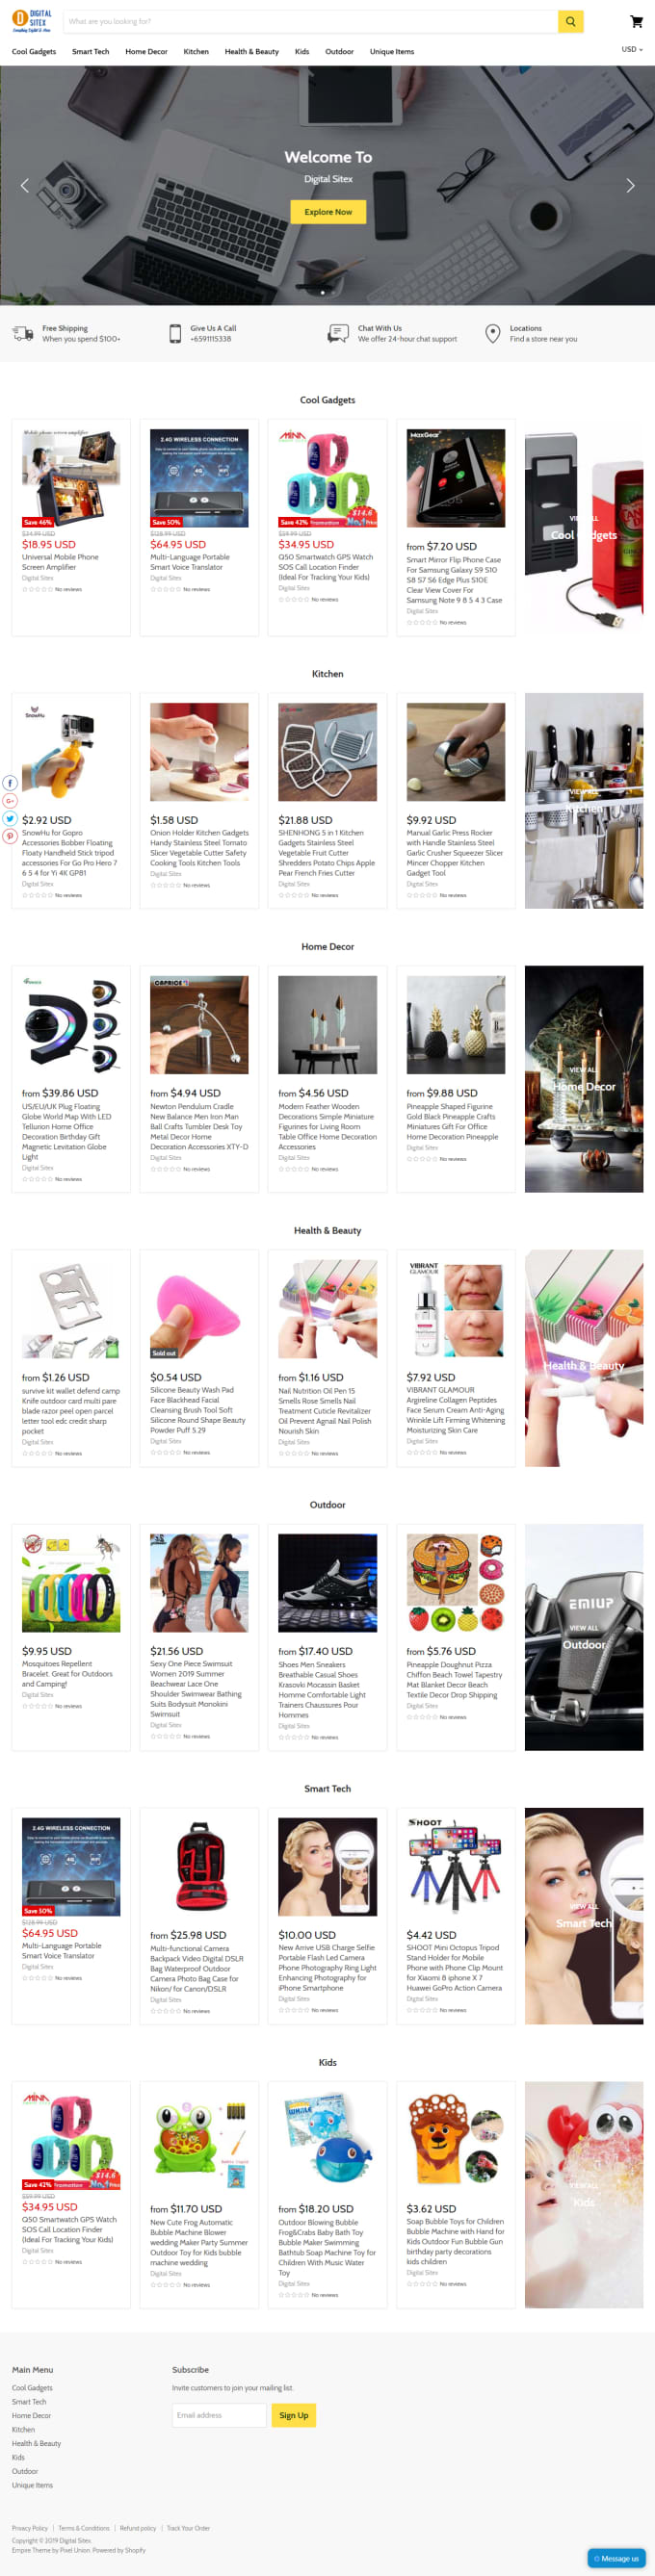 design shopify dropshipping website, shopify store